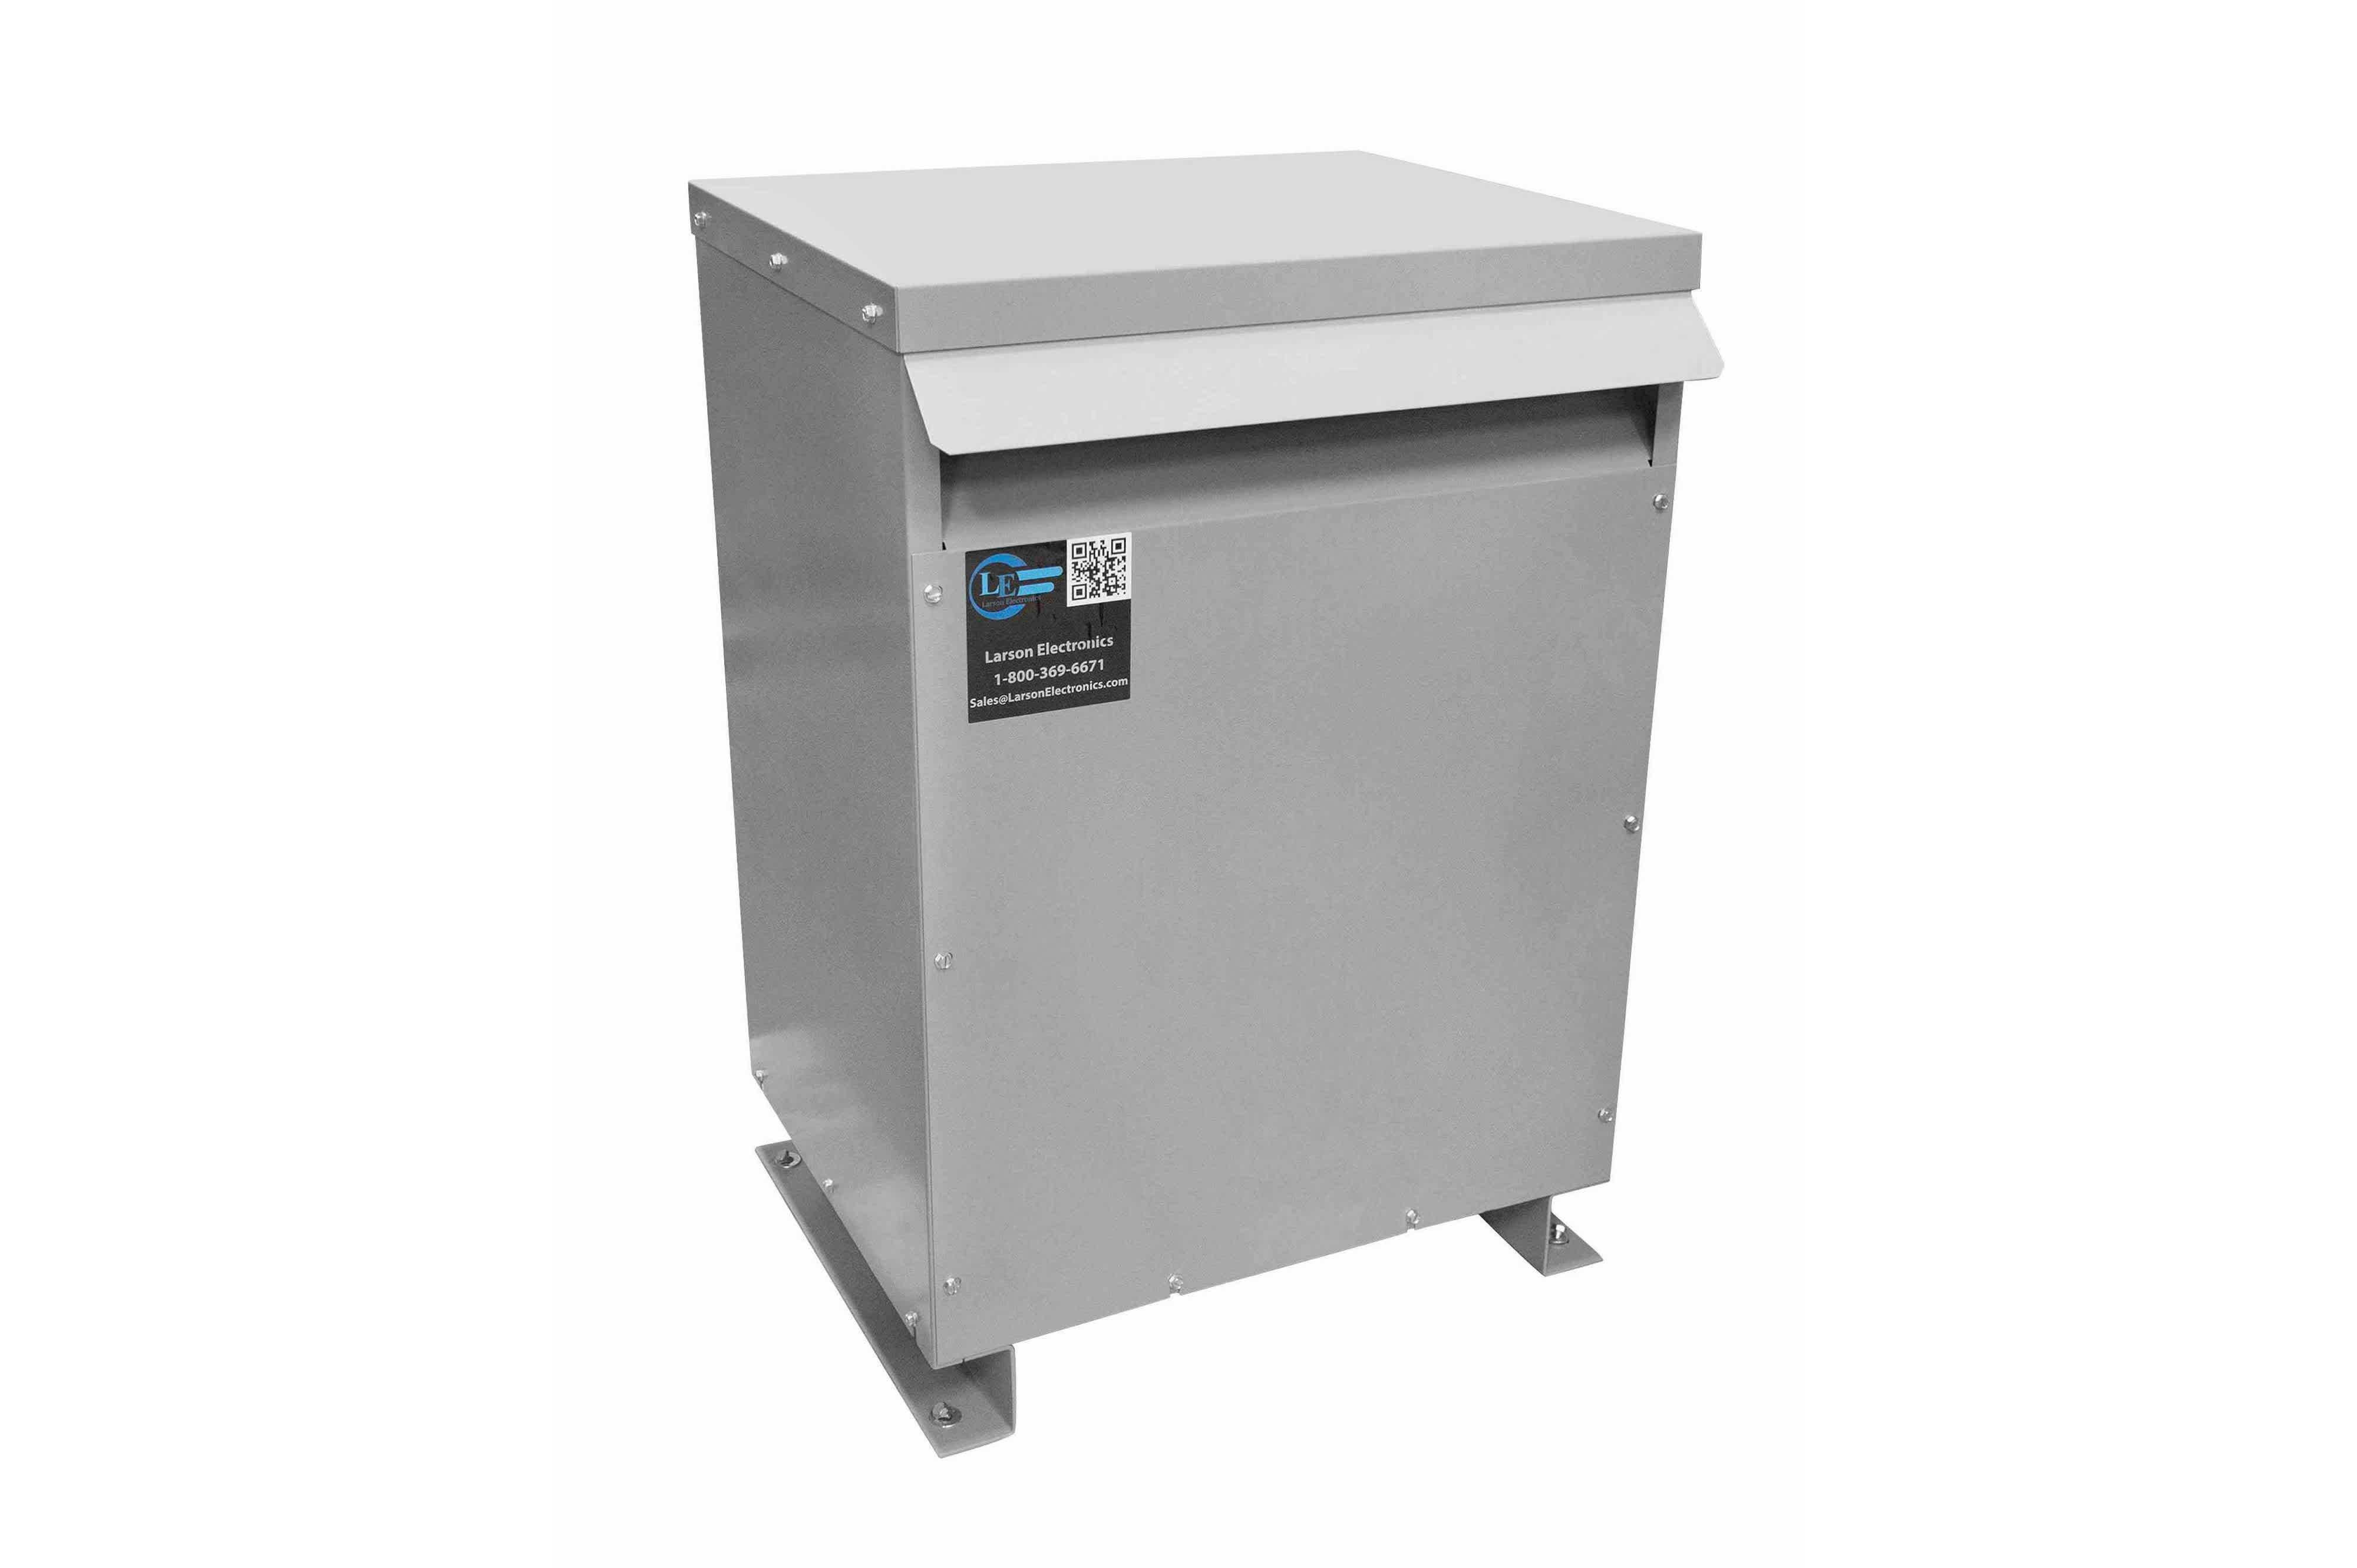 14 kVA 3PH Isolation Transformer, 240V Delta Primary, 400V Delta Secondary, N3R, Ventilated, 60 Hz